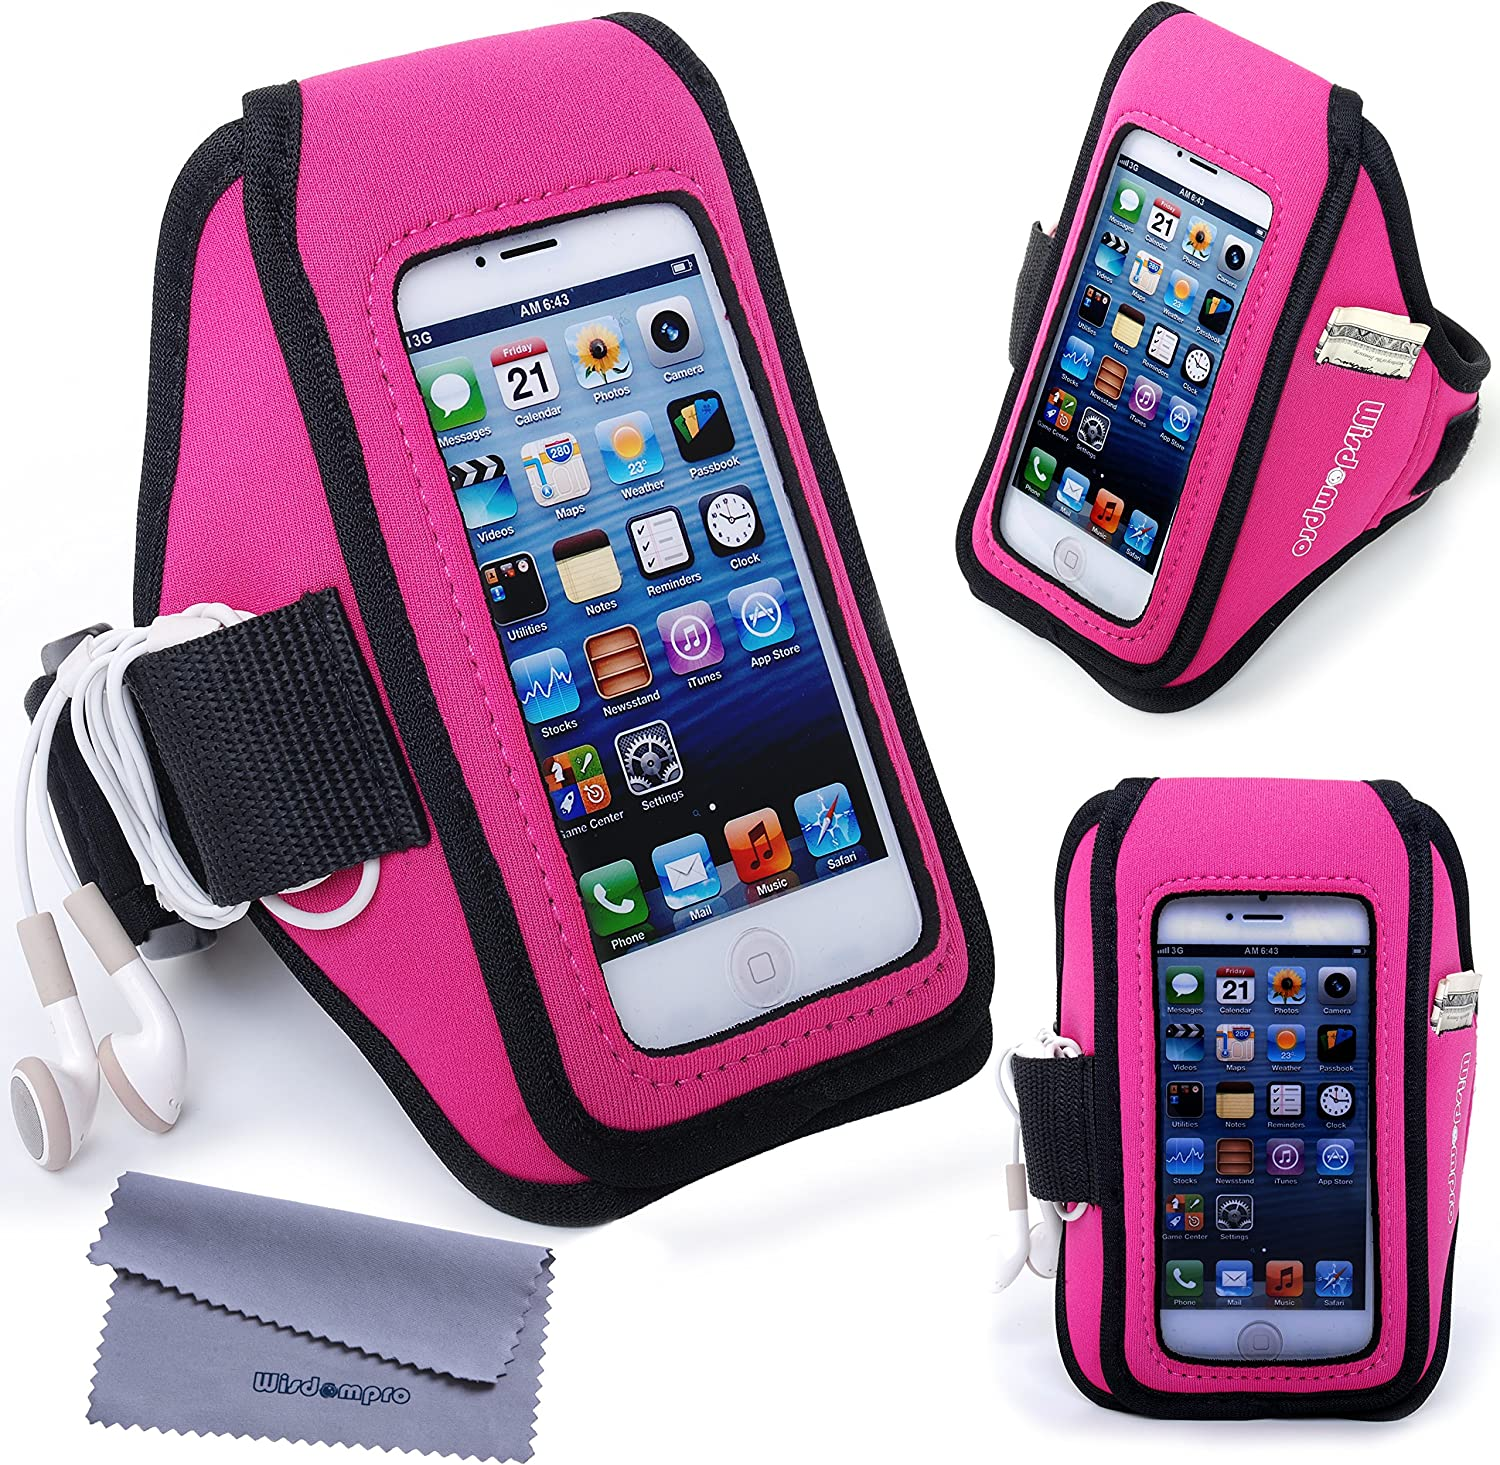 iPhone 5s Armband, iPhone SE Armband, Wisdompro Sports Running Armband Case with Headphones Organizer, Key Holder for Apple iPhone SE, 5, 5s, 5c and iPod Touch 5, 6, Touch 7 (Hot Pink and Black)